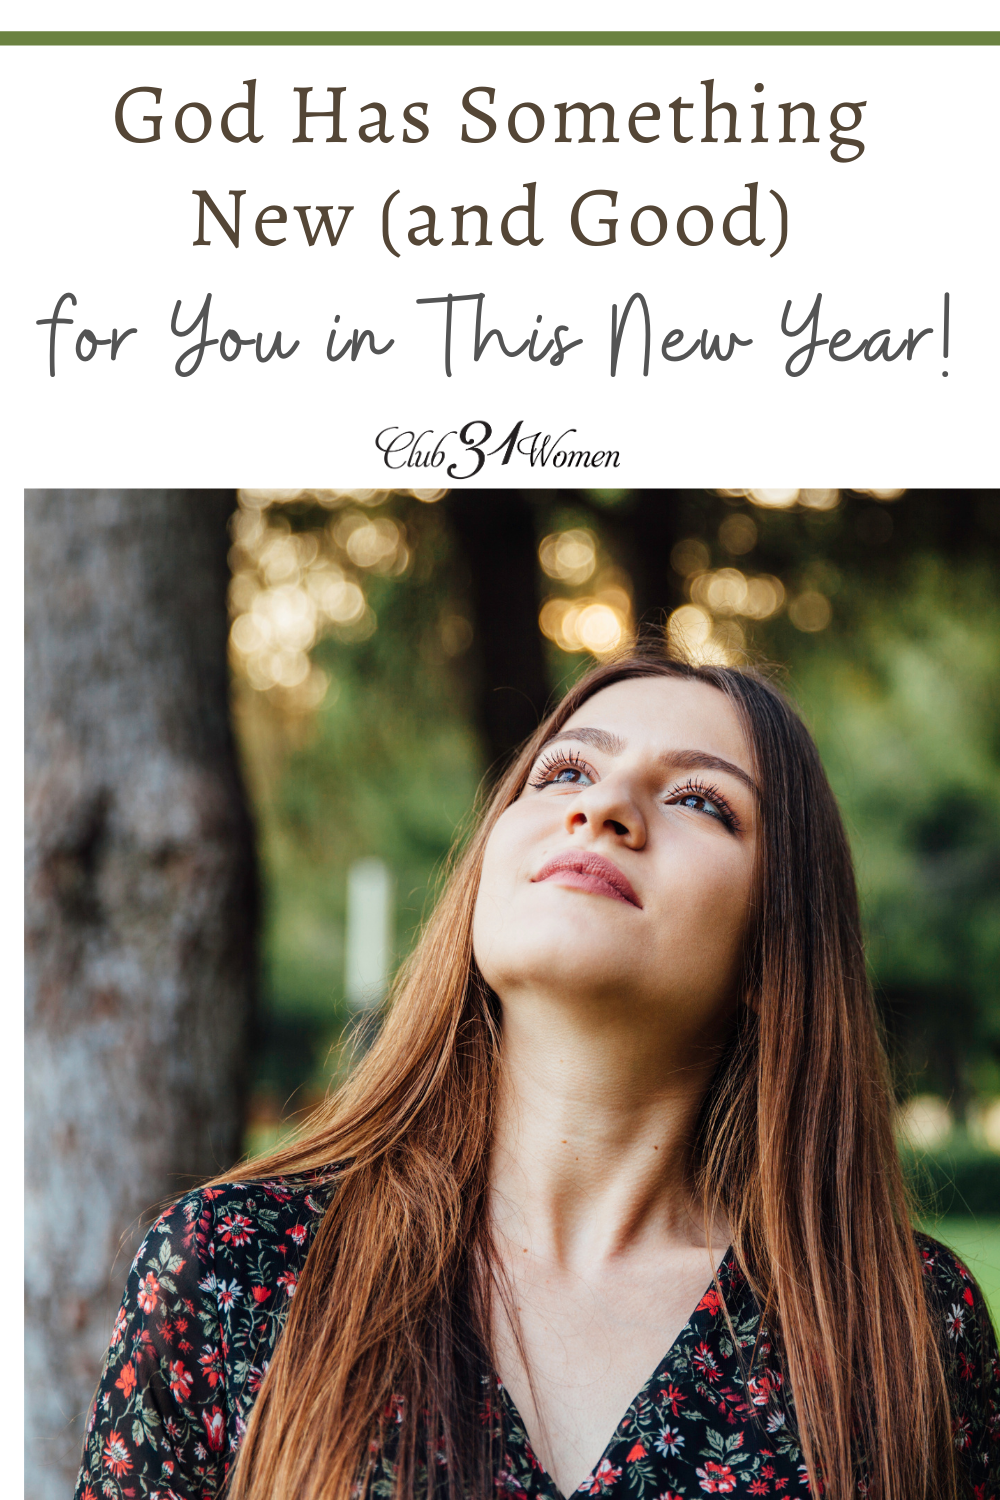 The new year can bring new hope and new possibilities if you're willing to trust God and follow His leading. via @Club31Women